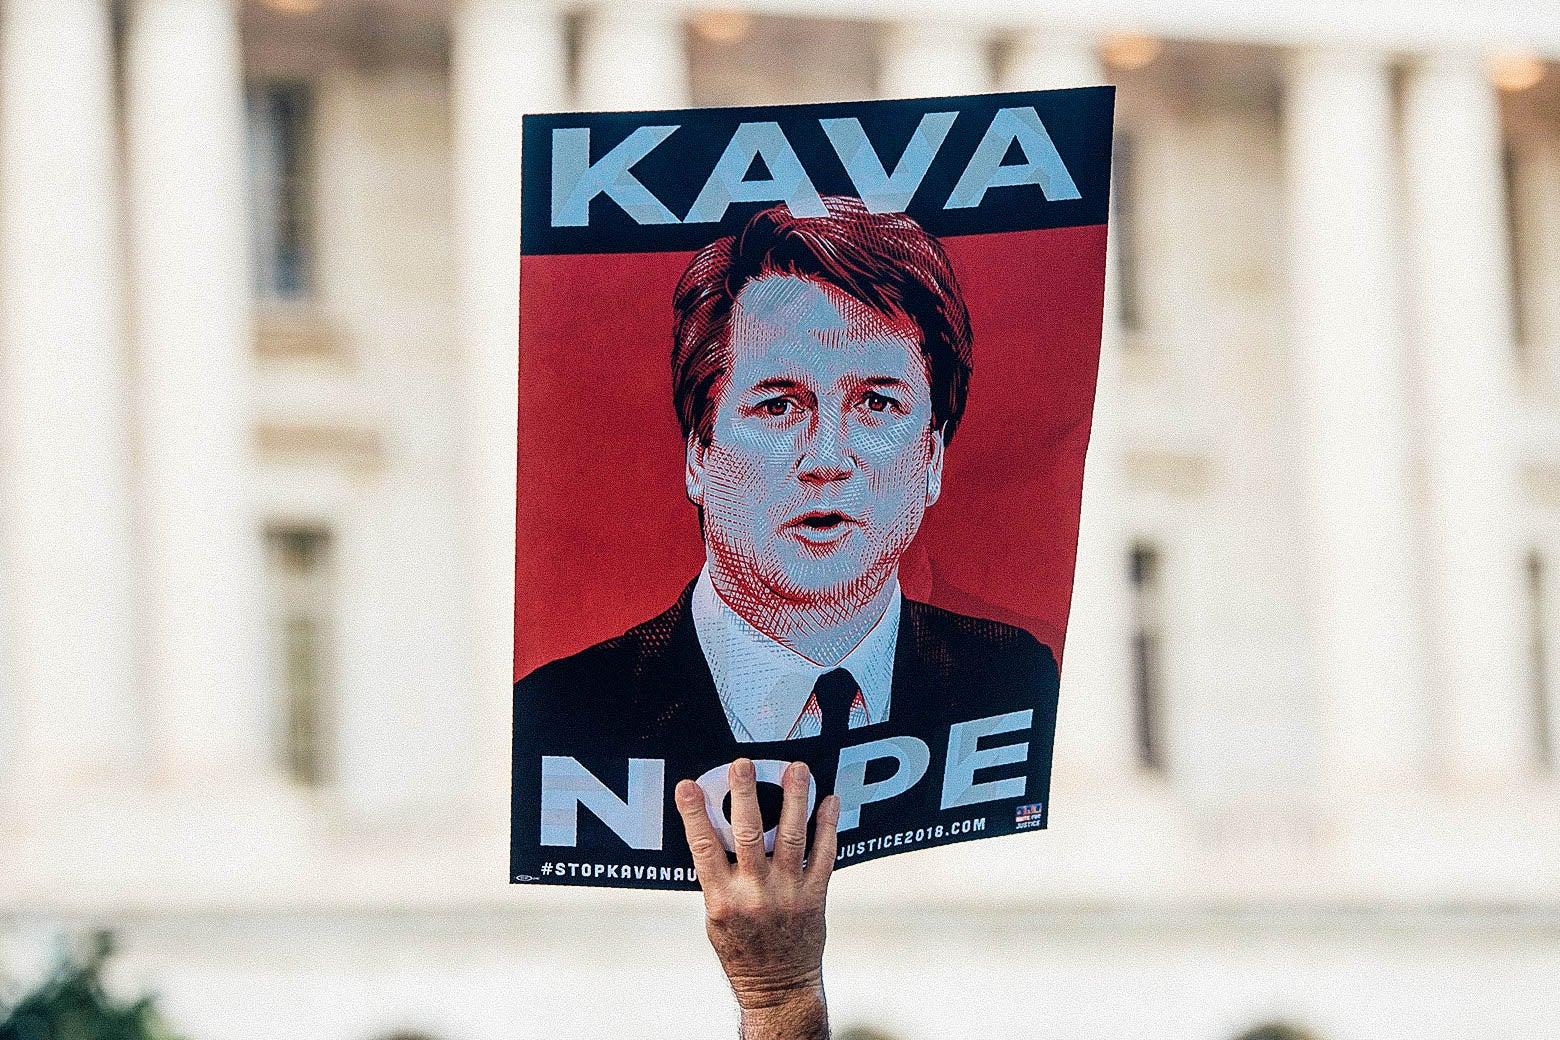 """A protester holds a sign that says """"KAVA NOPE"""" at a rally near Capitol Hill on Sept. 4"""